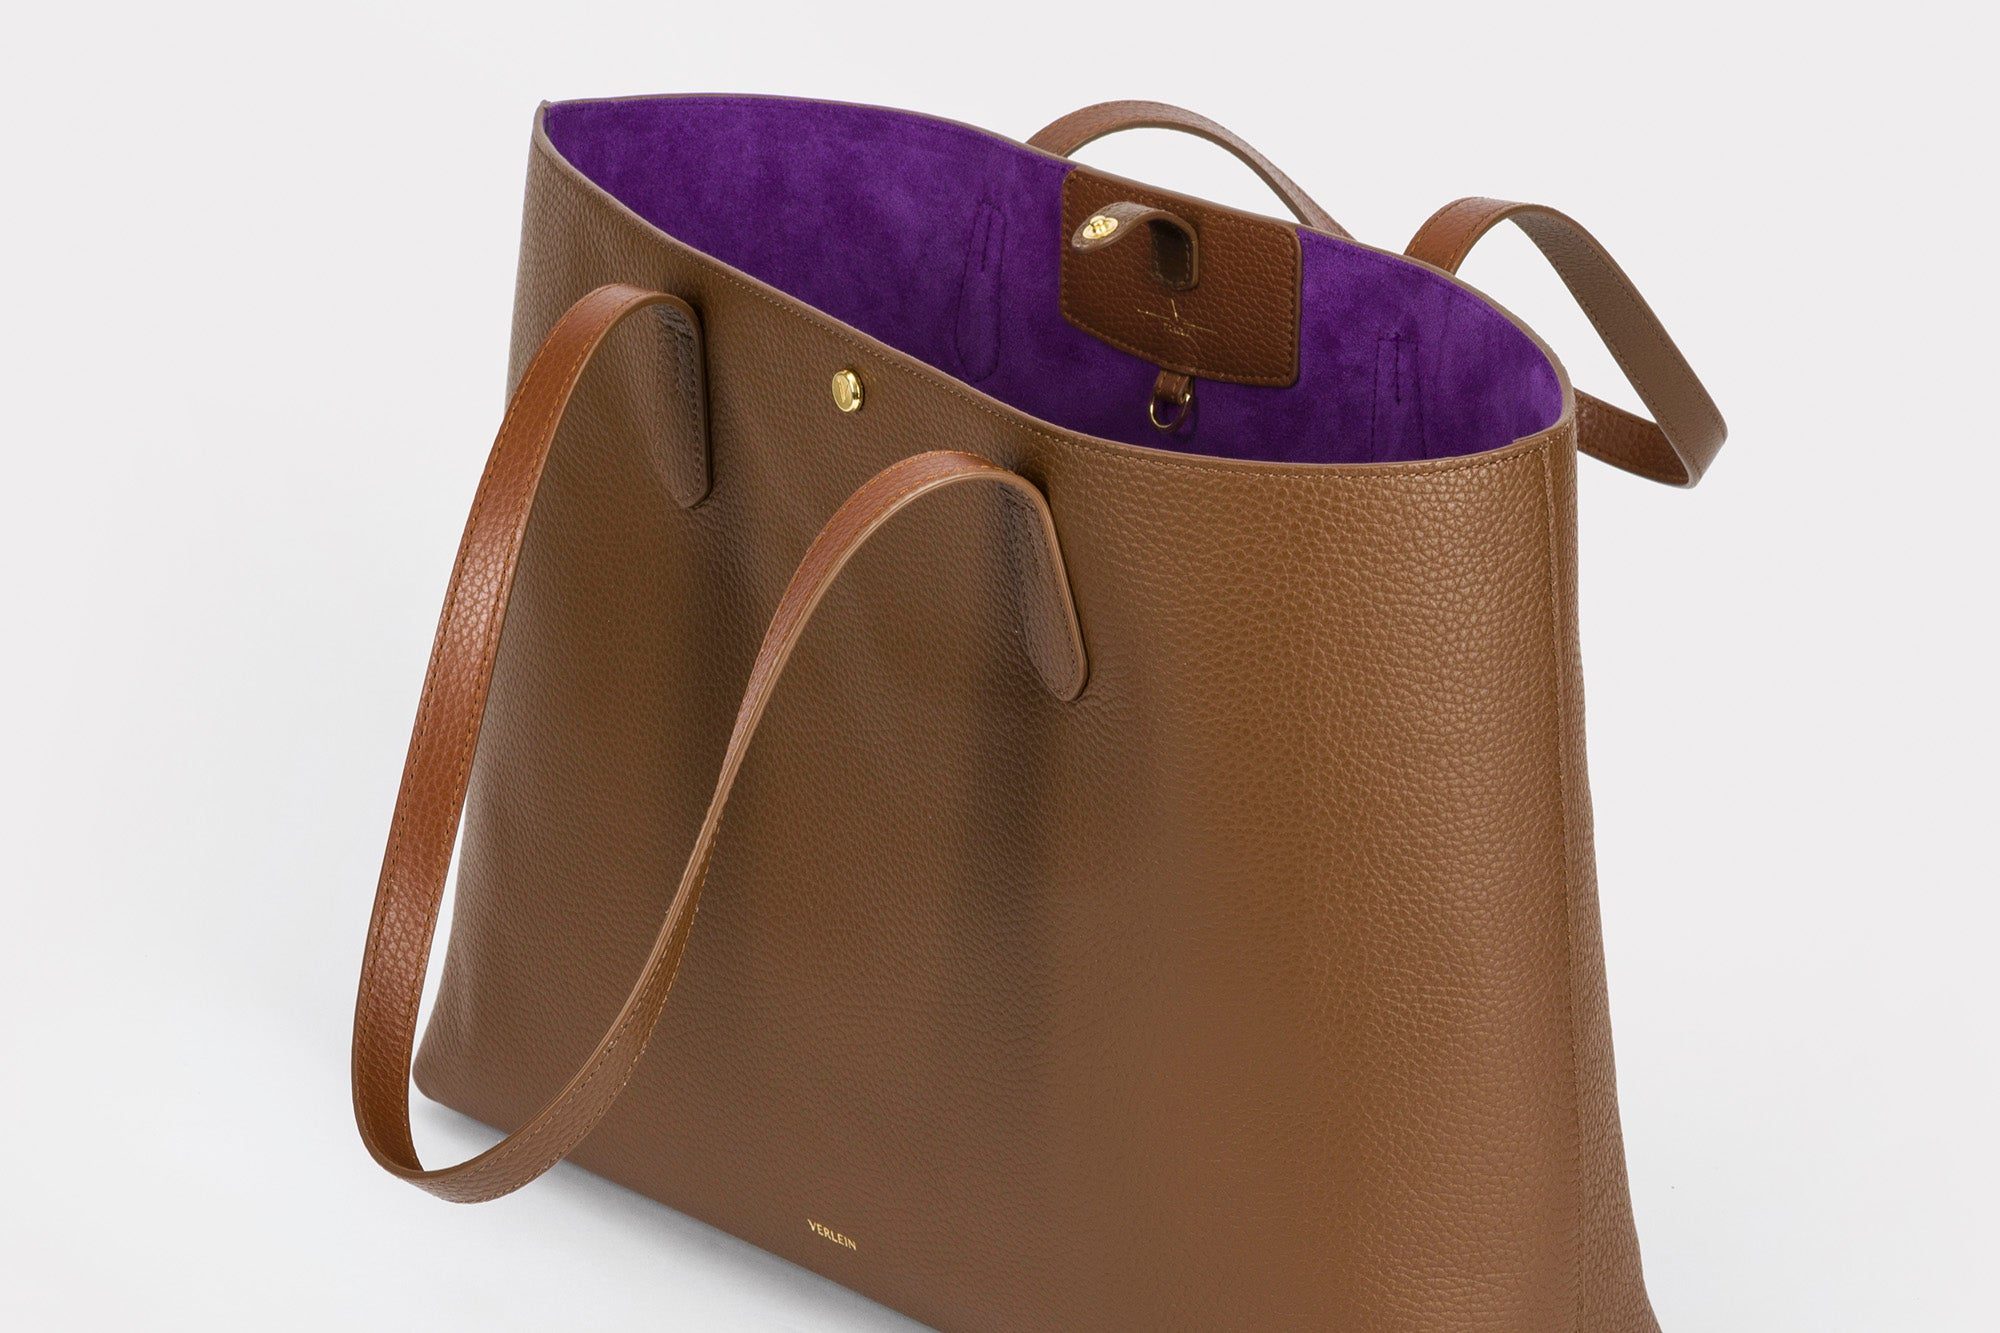 An open Julia Tote bag, in Chocolate Brown, from Verlein